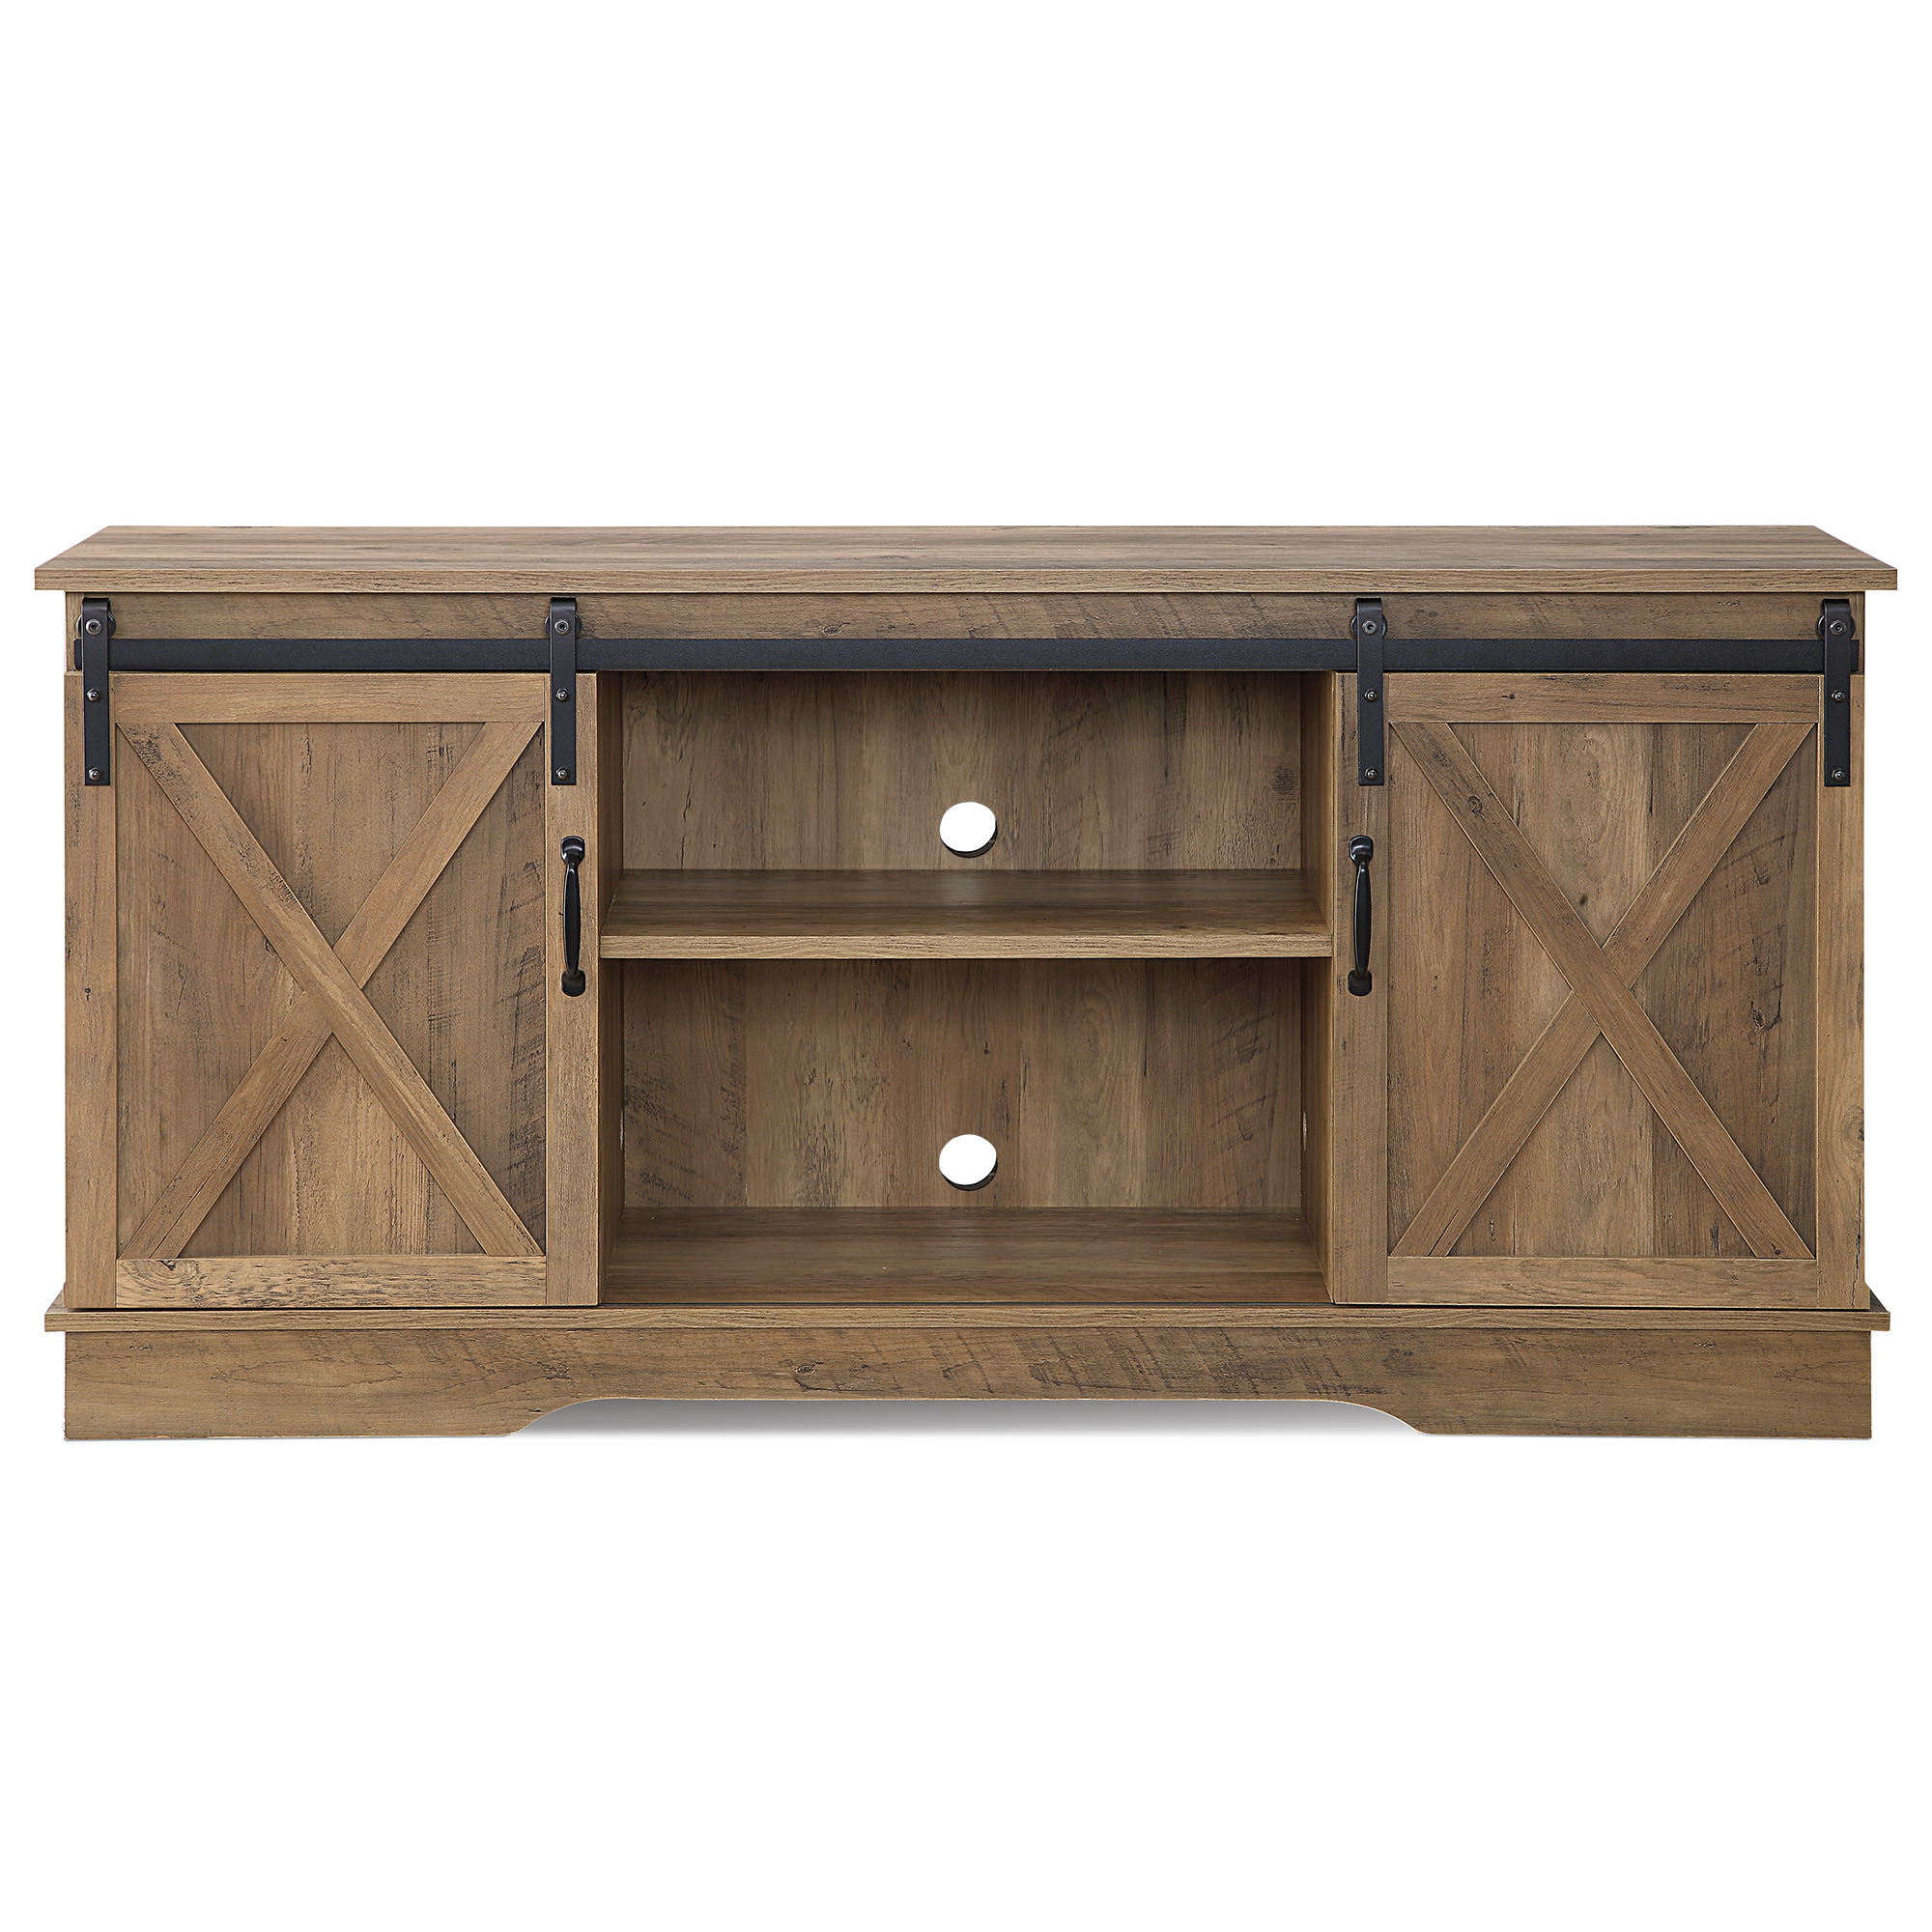 """58""""farmhouse Tv Stand W/sliding Door Console Table For Tvs Throughout Robinson Rustic Farmhouse Sliding Barn Door Corner Tv Stands (View 1 of 20)"""